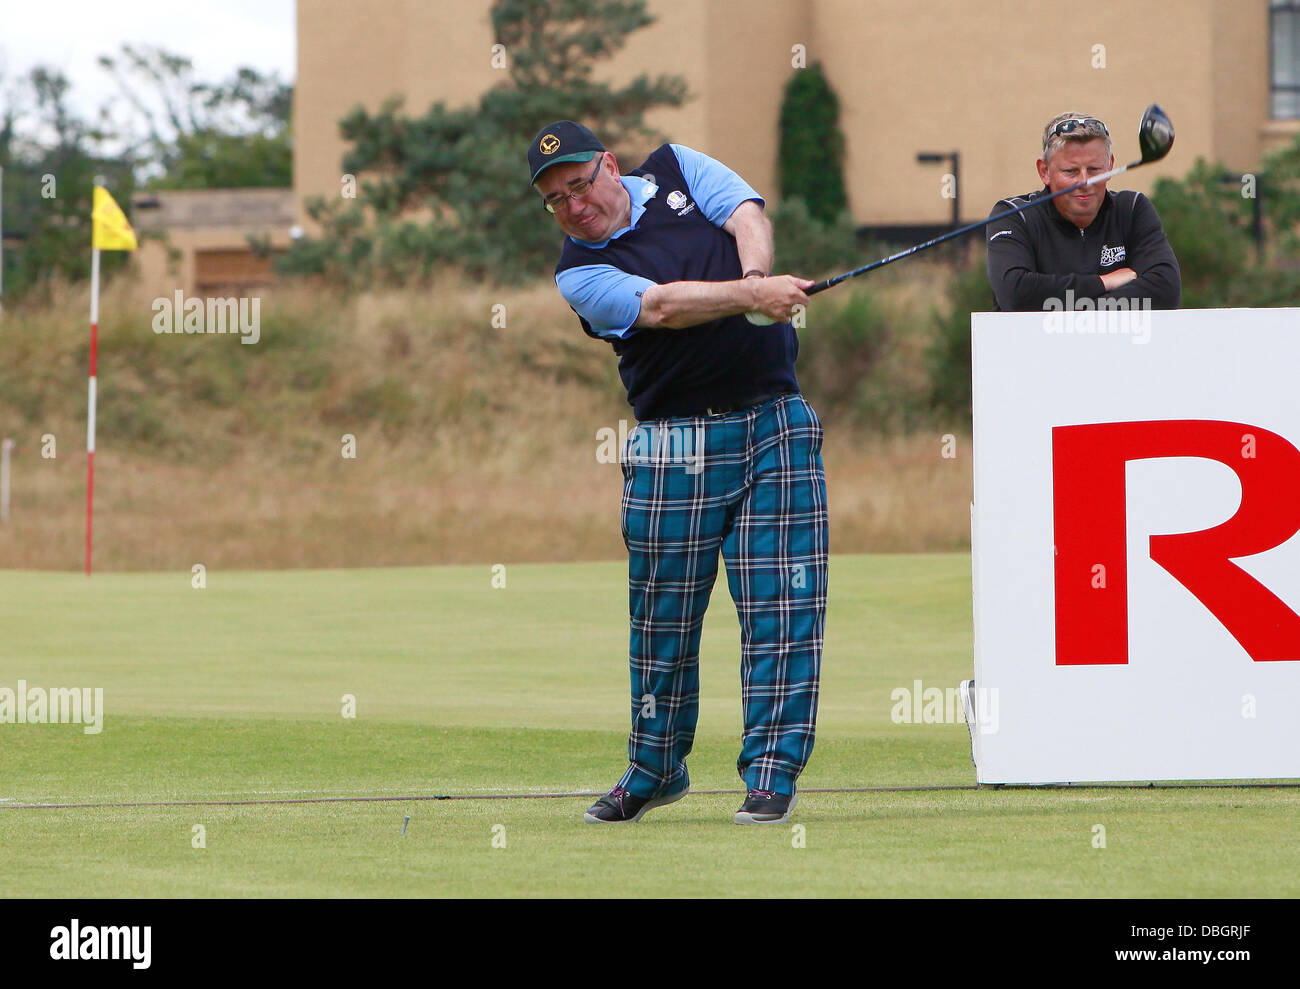 St Andrews, UK. 30th July, 2013. Catriona Matthew plays alongside Scotland's First Minister Alex Salmond in the Stock Photo